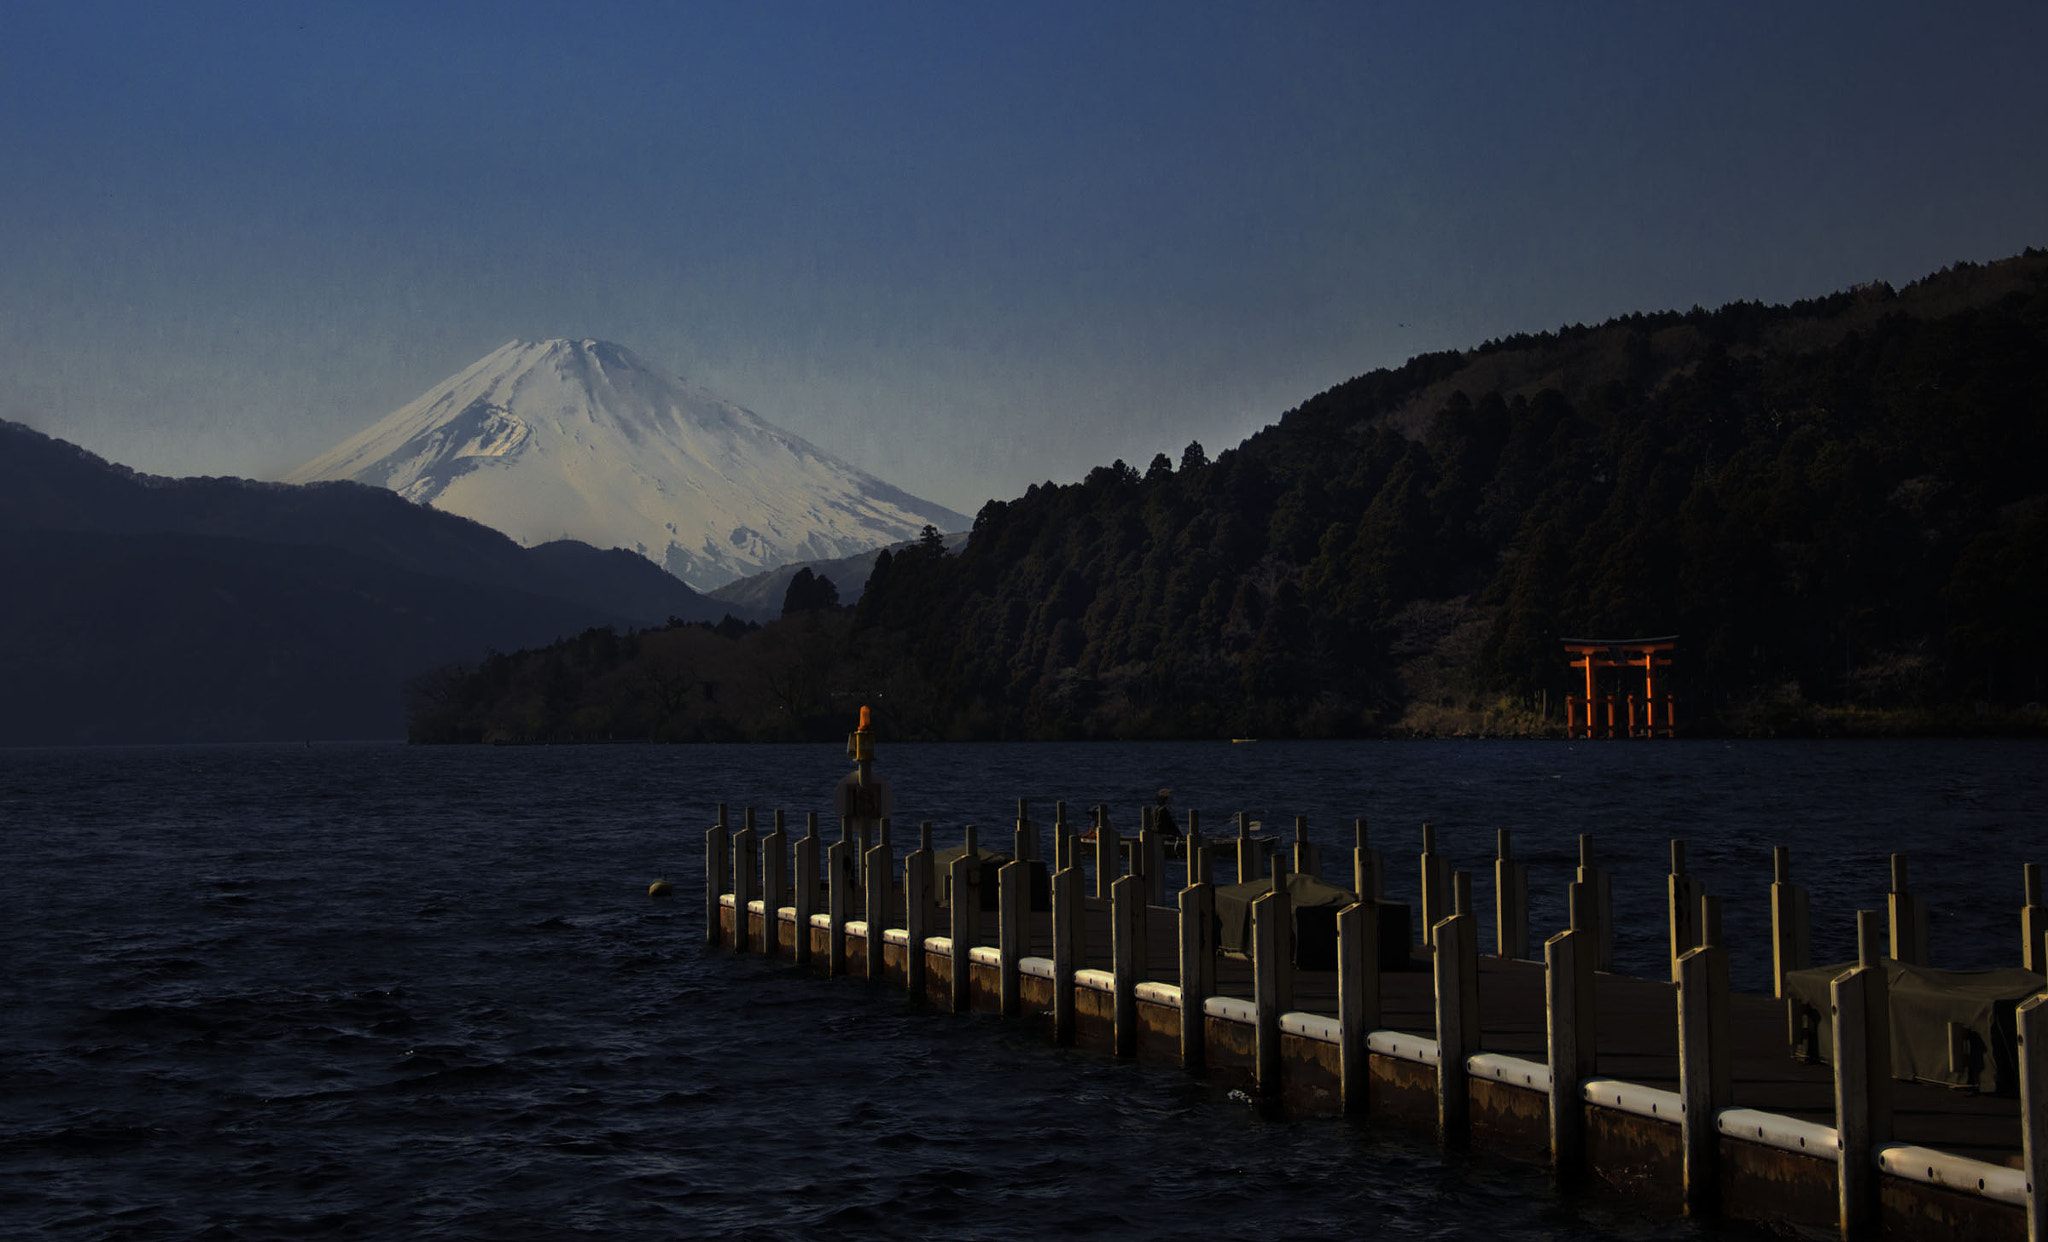 Photograph Mt Fuji from the No. 8 Pier by Alicia Holston on 500px